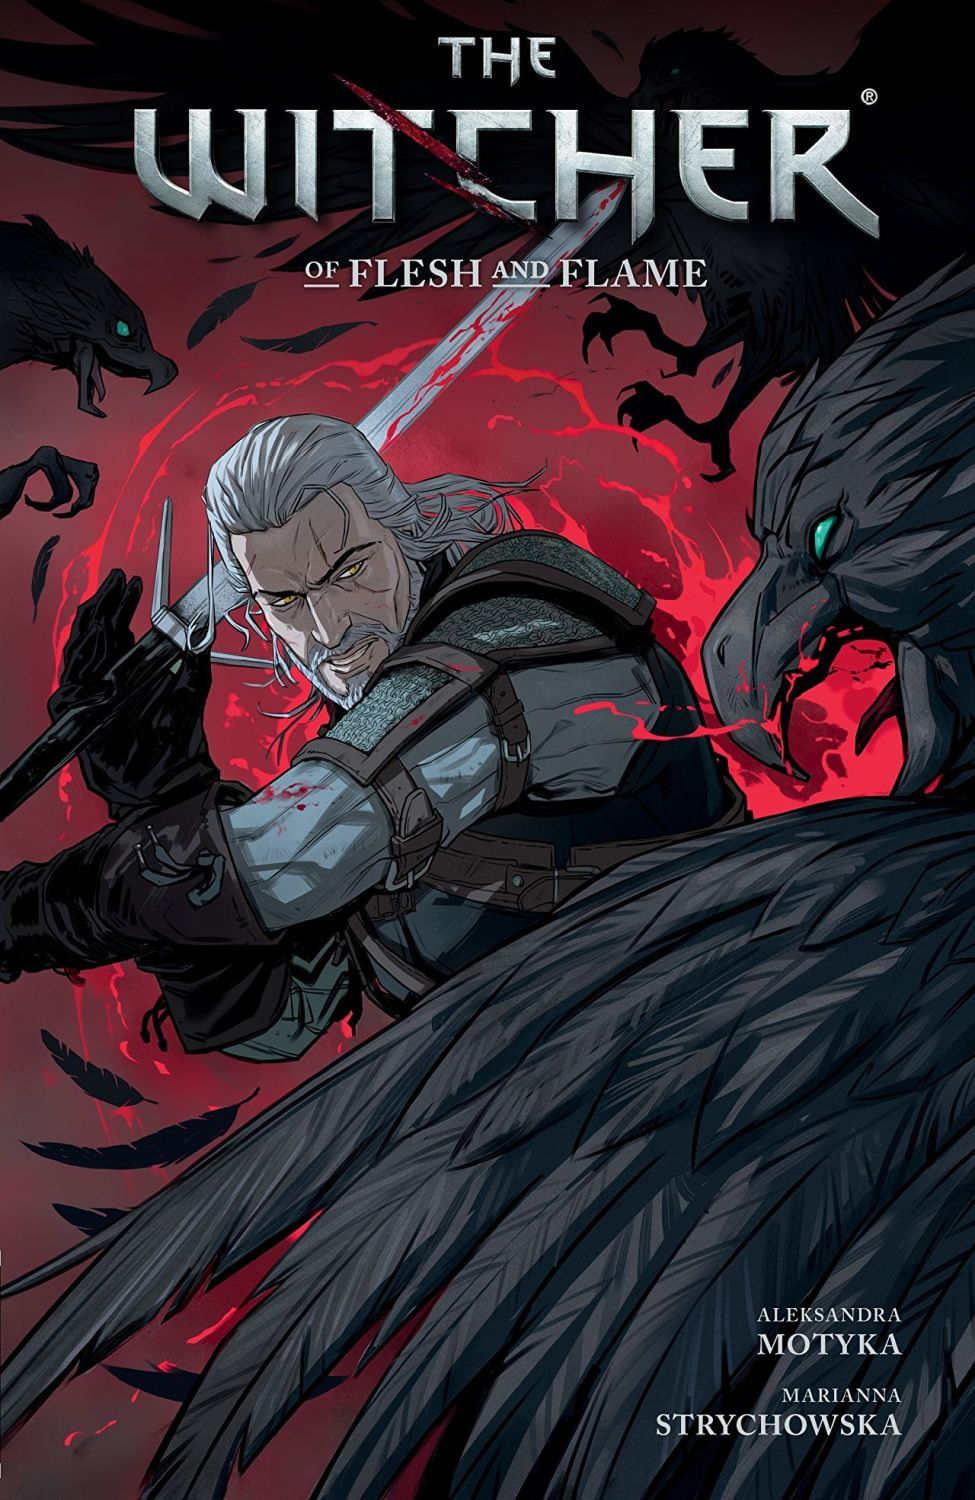 The Witcher Volume 4 Of Flesh and Flame - 1